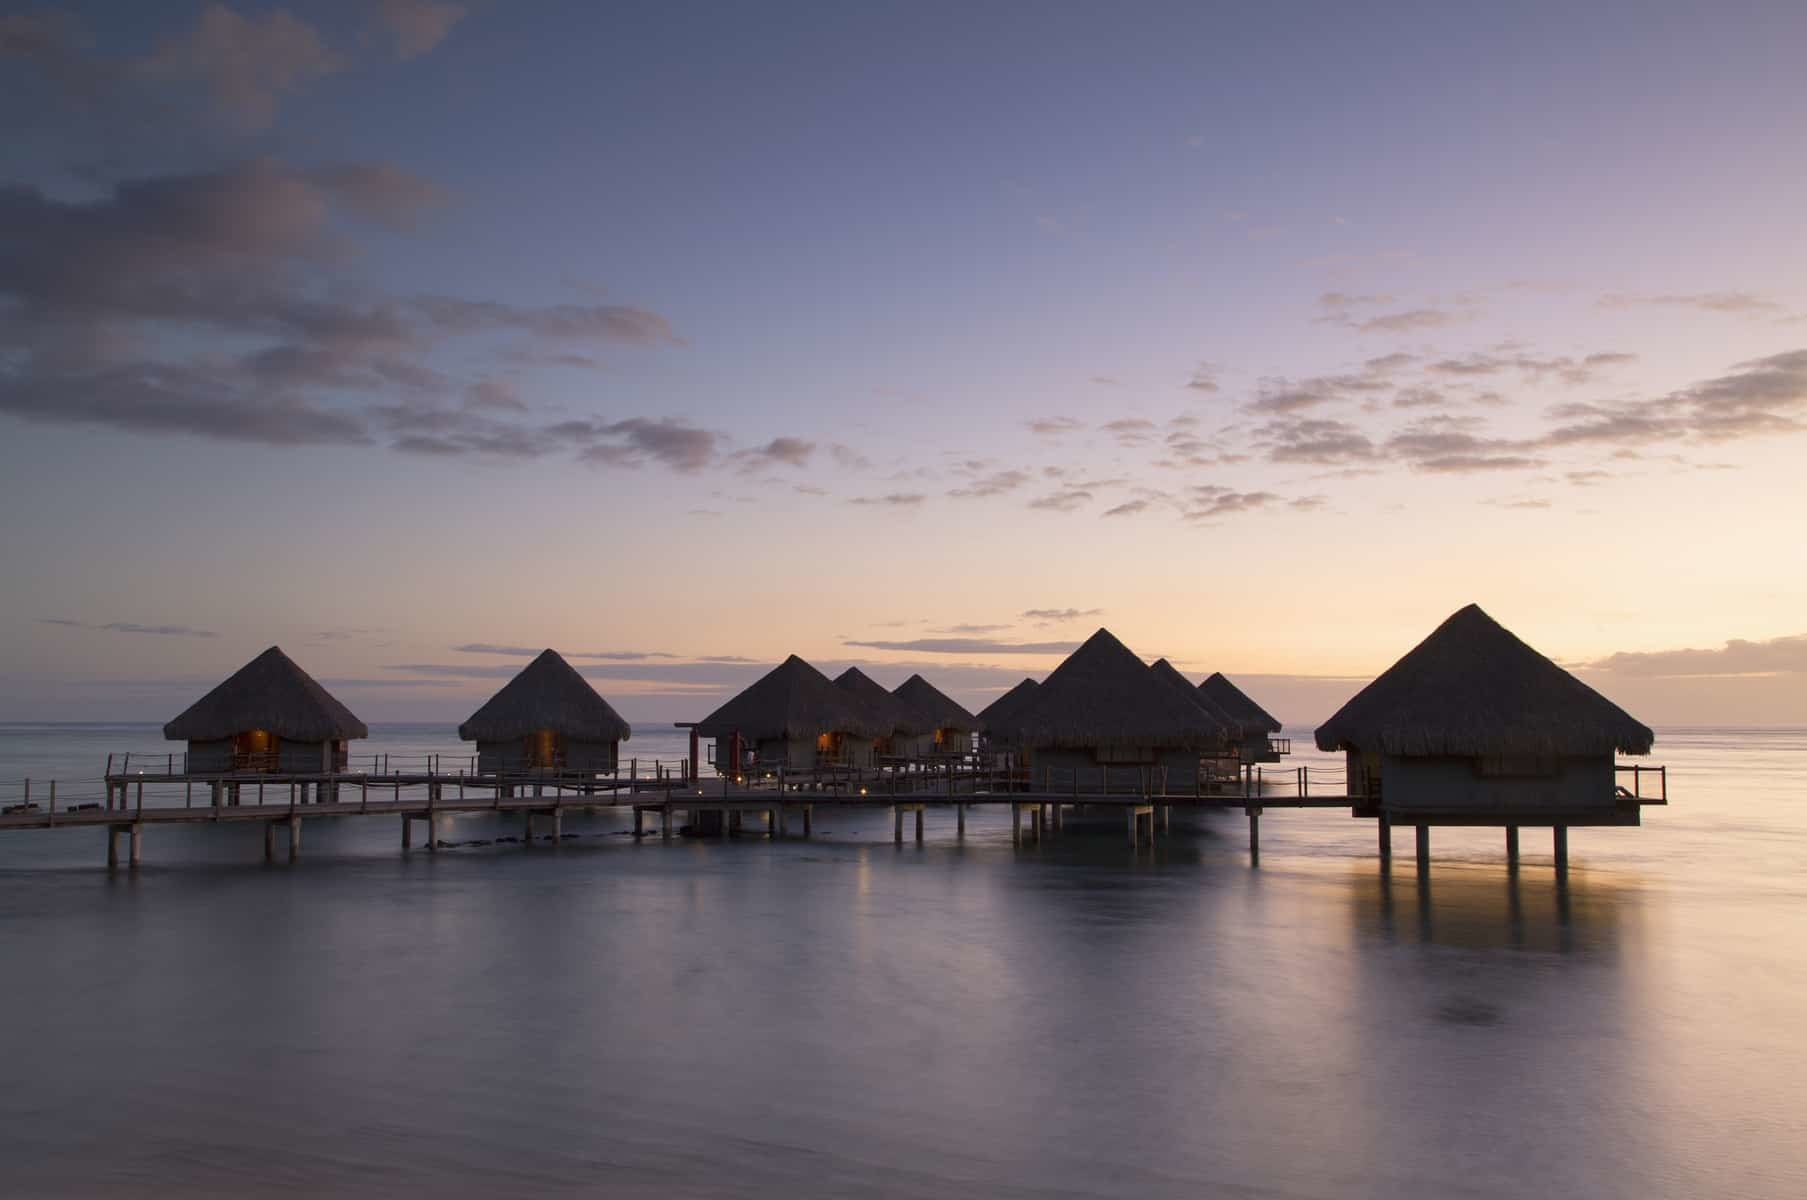 Overwater bungalows at Le Meridien Tahiti Hotel at sunset, Pape'ete, Tahiti, French Polynesia